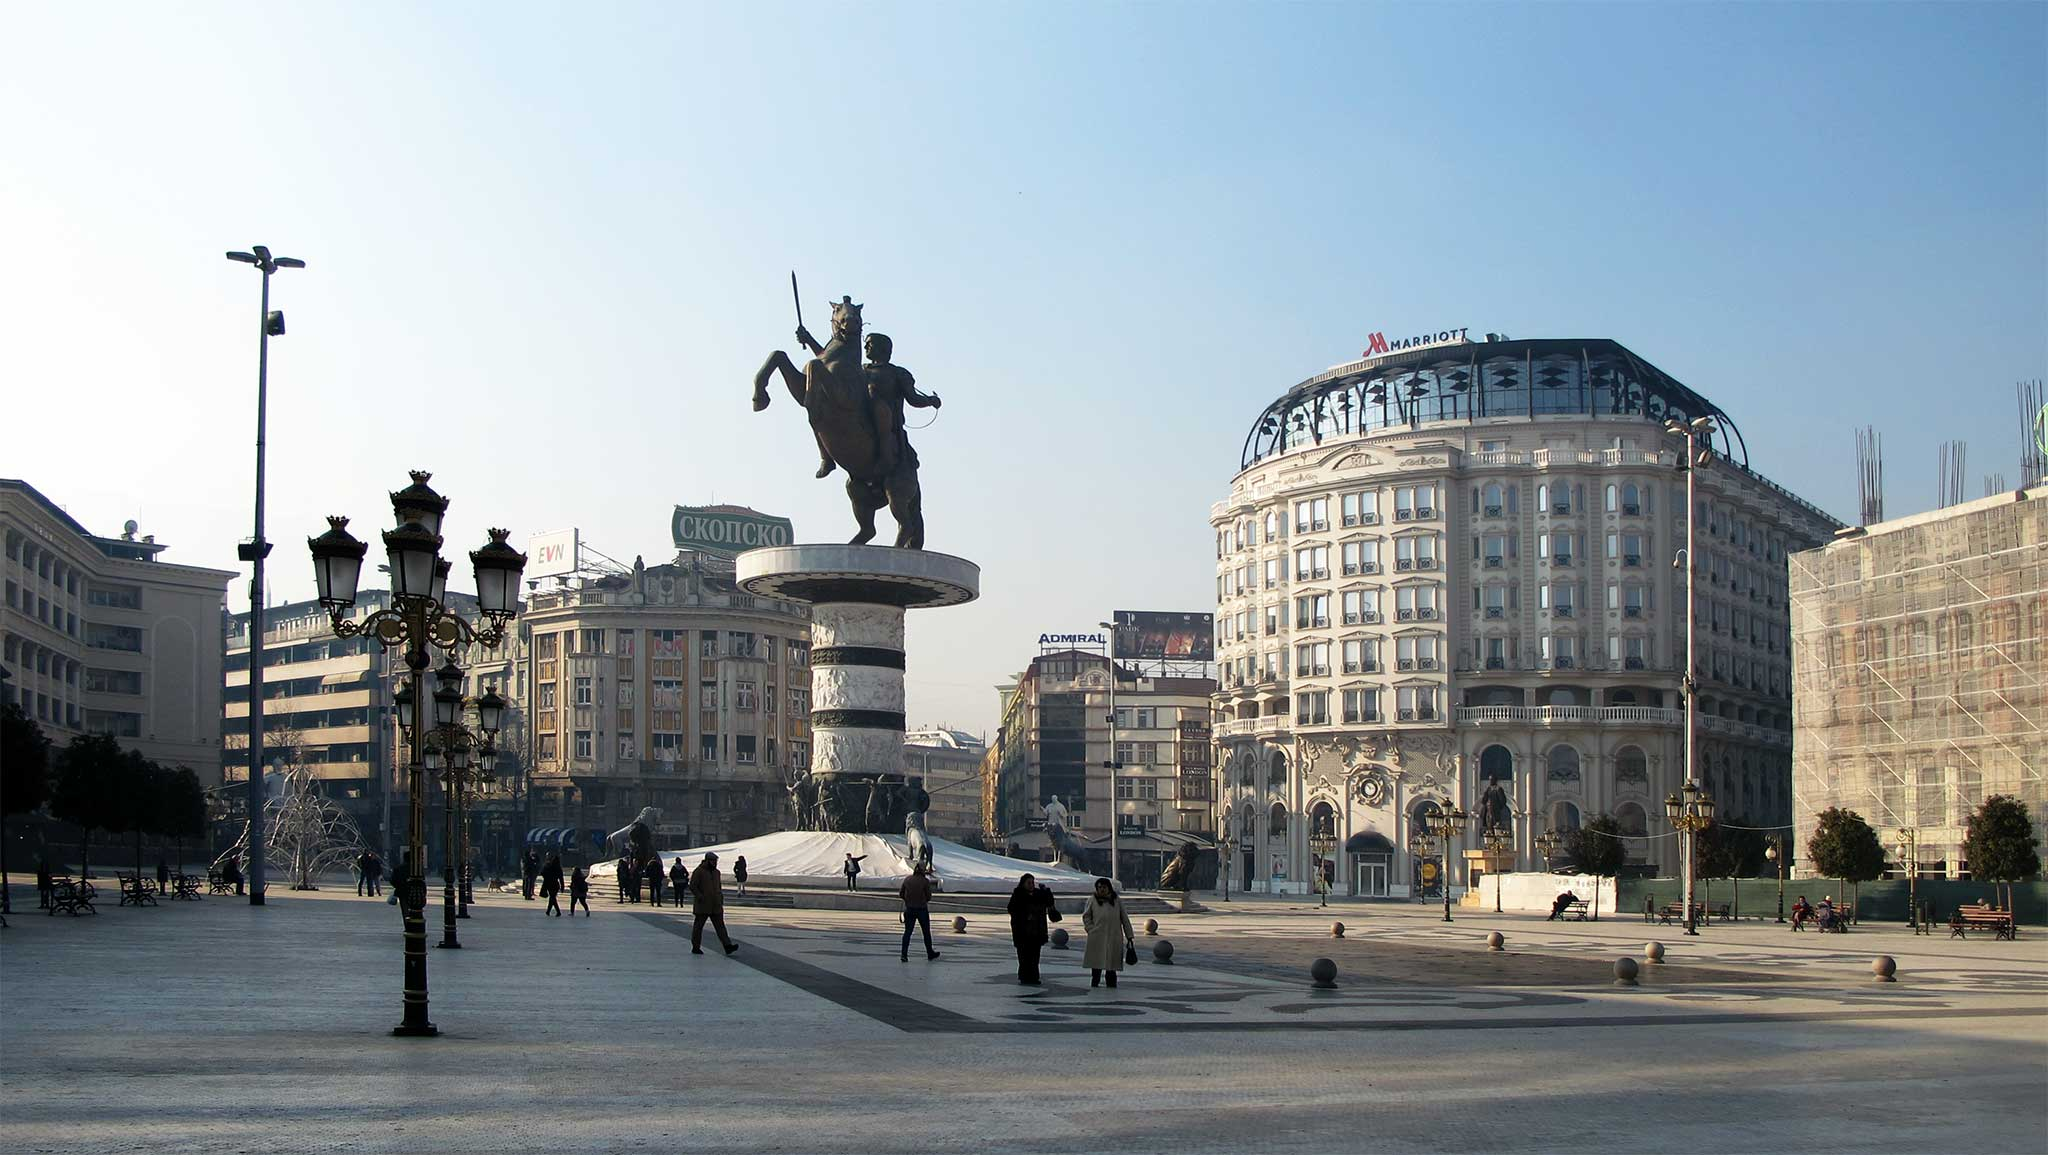 Skopje - Macedonia Square